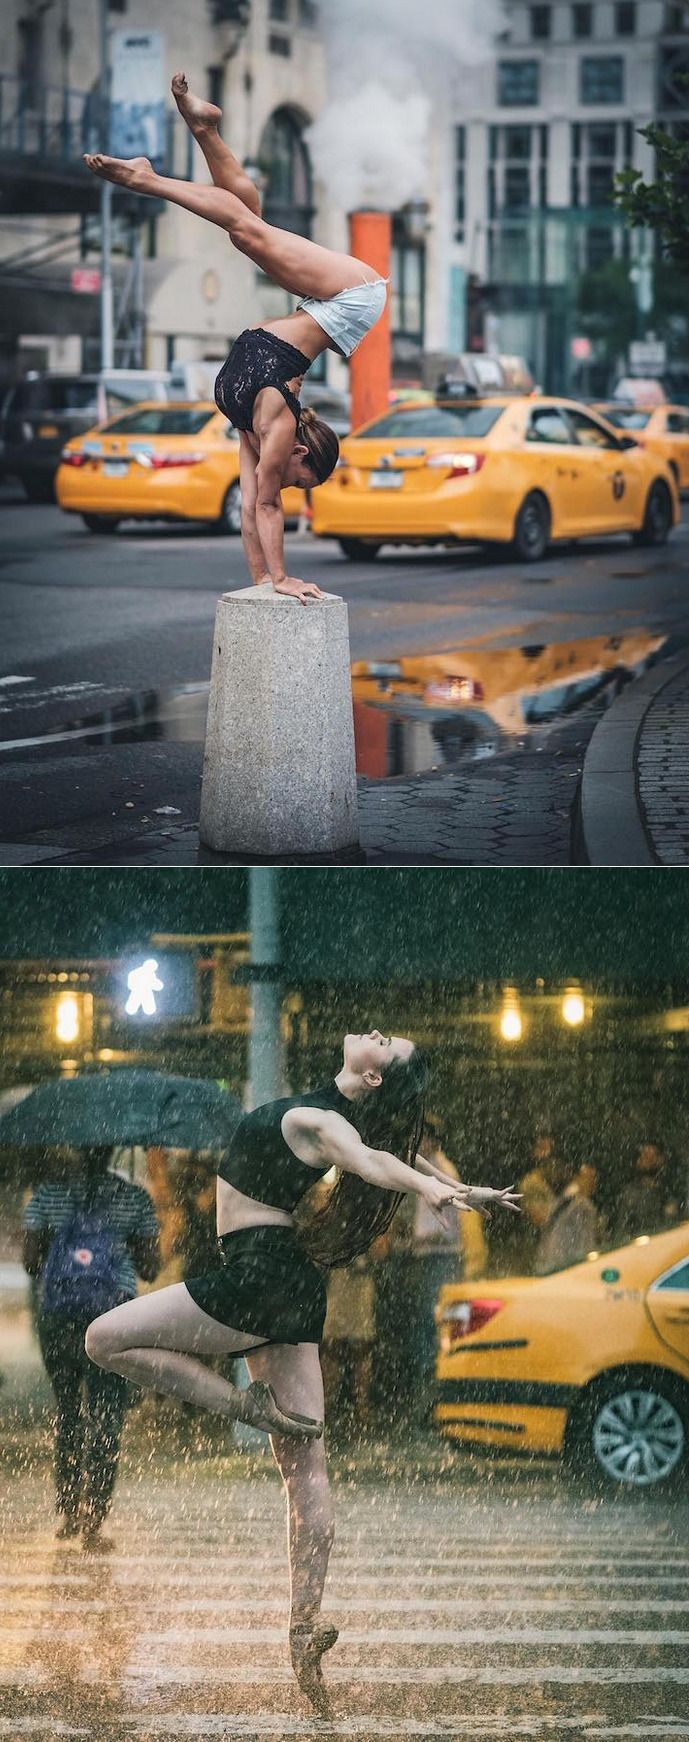 Beautiful Ballet Portrait Of Performers Claiming The Streets Of NYC: ballet is an intimately physical art that has been merged with the beauty of music, photography and dance, captured by Puerto Rico born, NYC-based photographer Omar Robles' camera on the streets of New York city. | culturenlifestyle